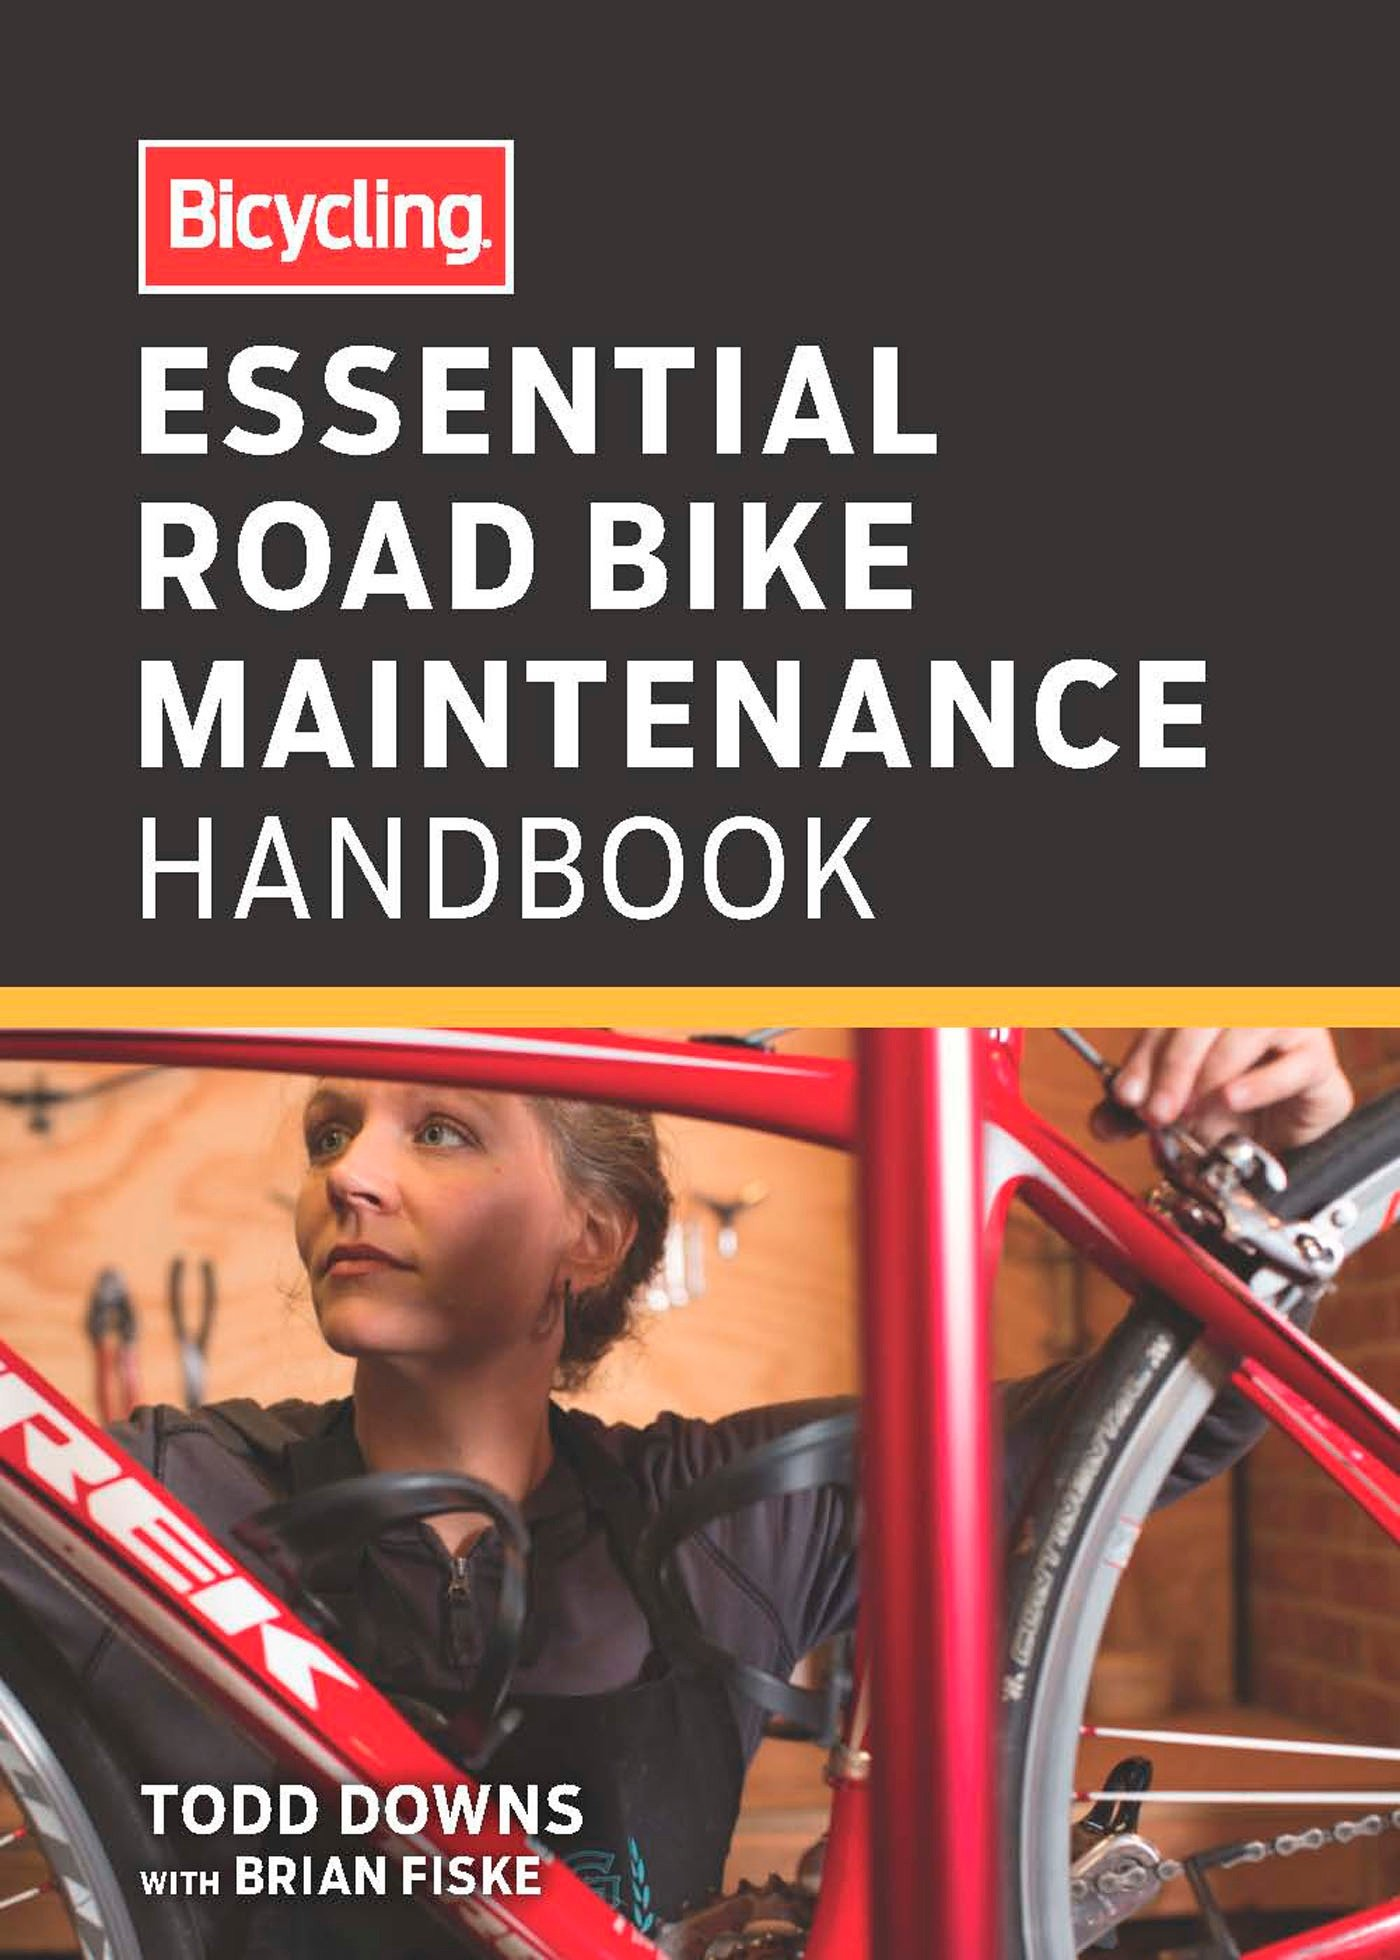 Image OfBicycling Essential Road Bike Maintenance Handbook Lingua Inglese